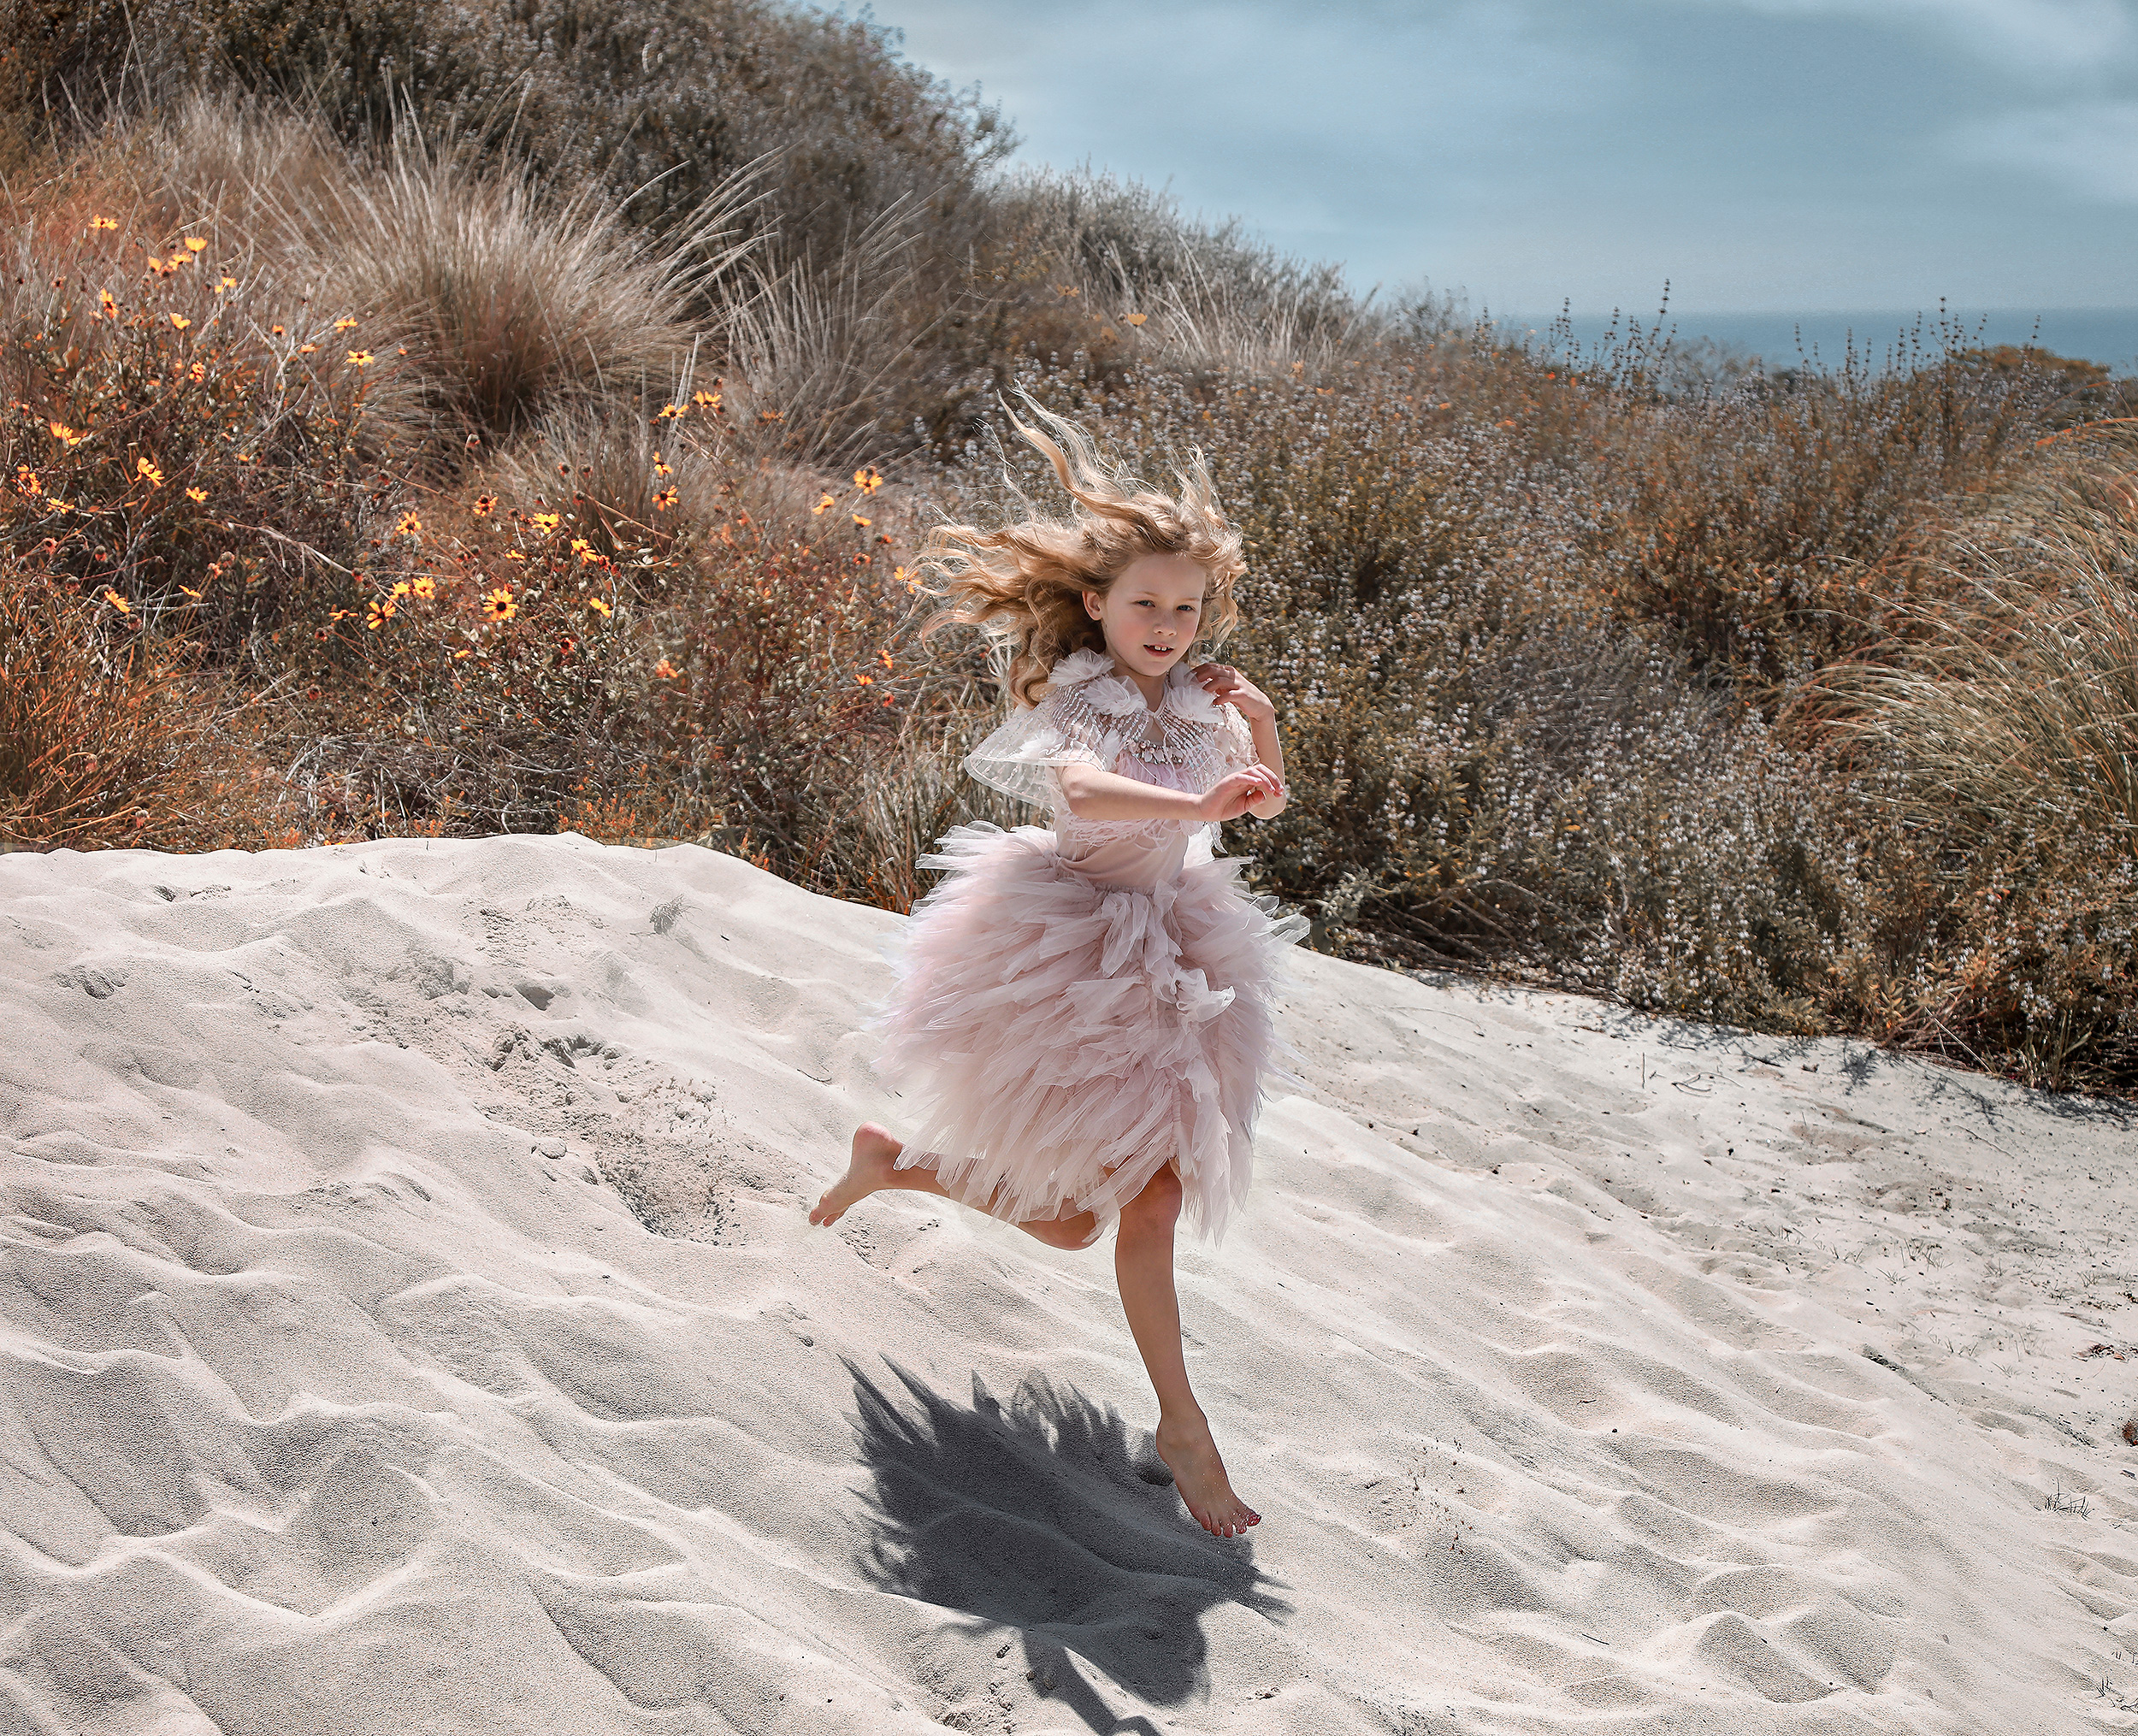 Capturing children's most extraordinary moments - We Love To See Your Kids Shine